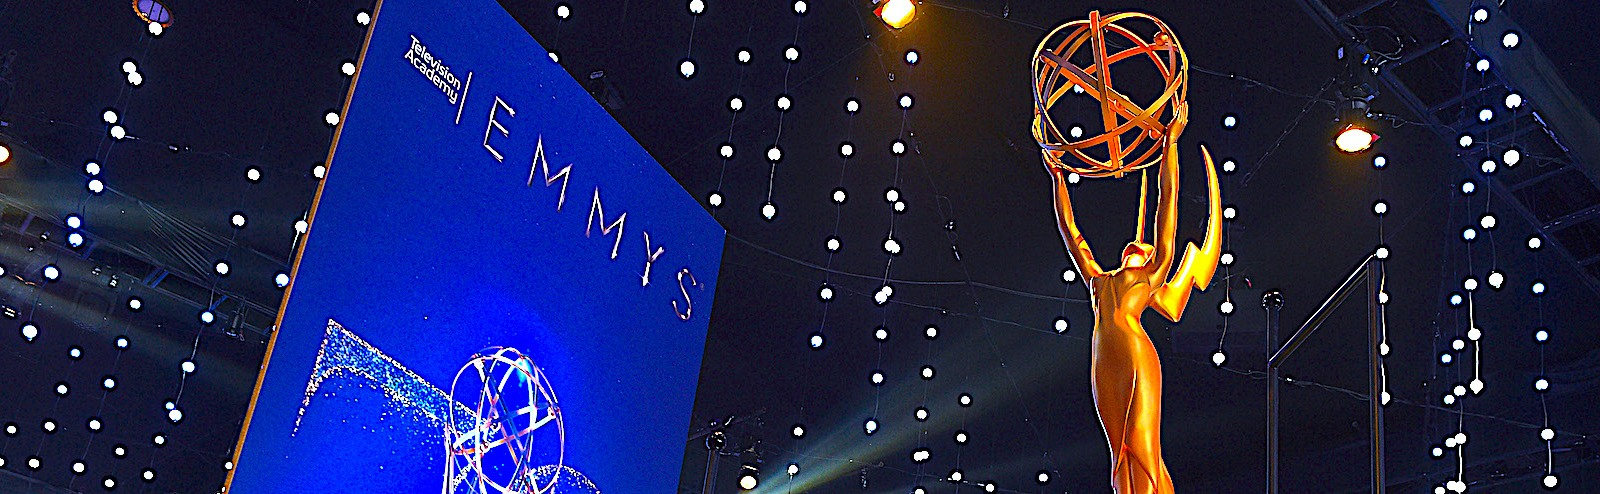 Conan In Ham Mode, Groaner Bits, British Dominance: Winners And Losers From The 2021 Emmys